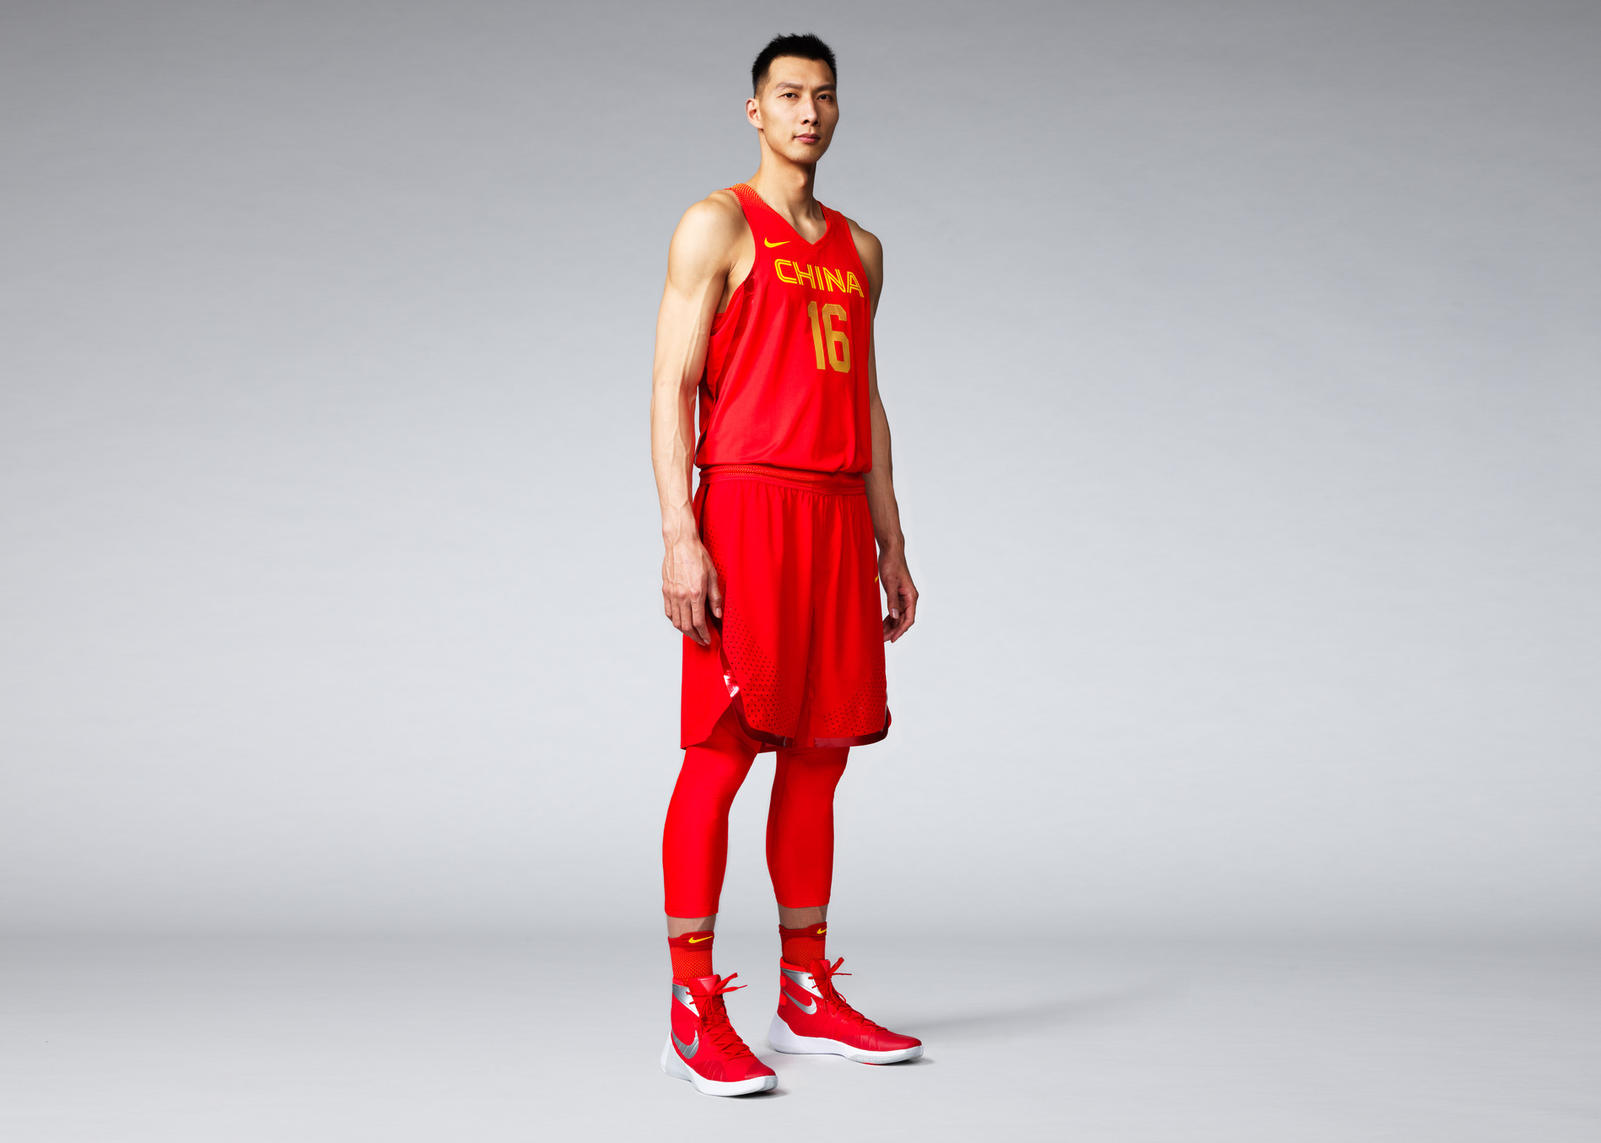 China 2016 Nike Vapor Basketball Uniforms - Nike News